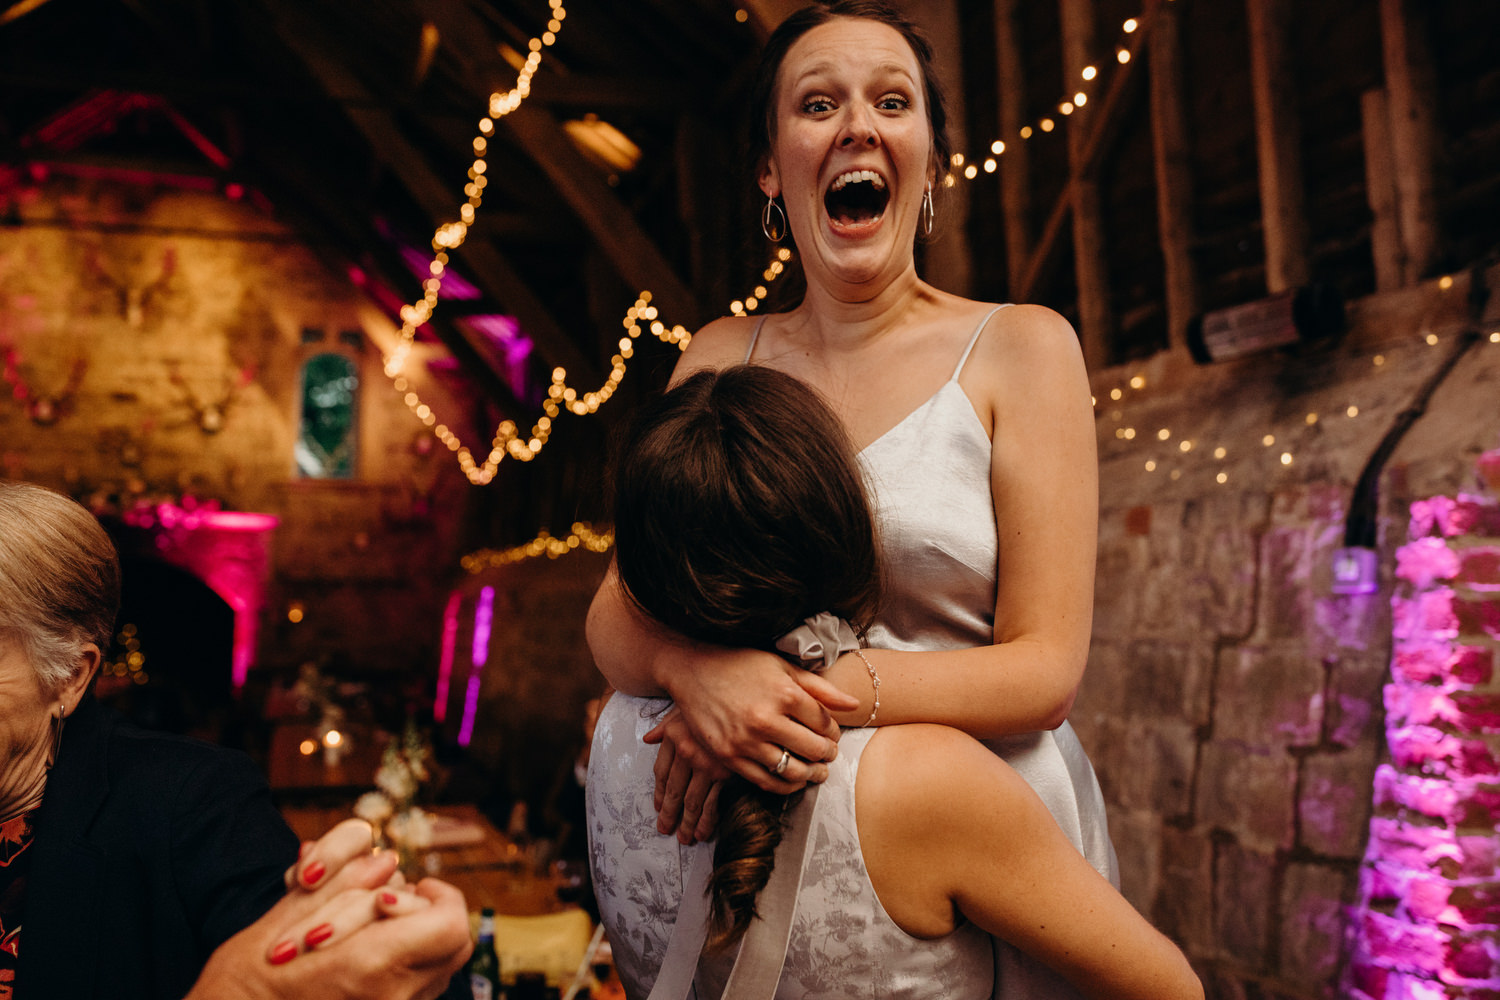 bridesmaid having fun at wedding